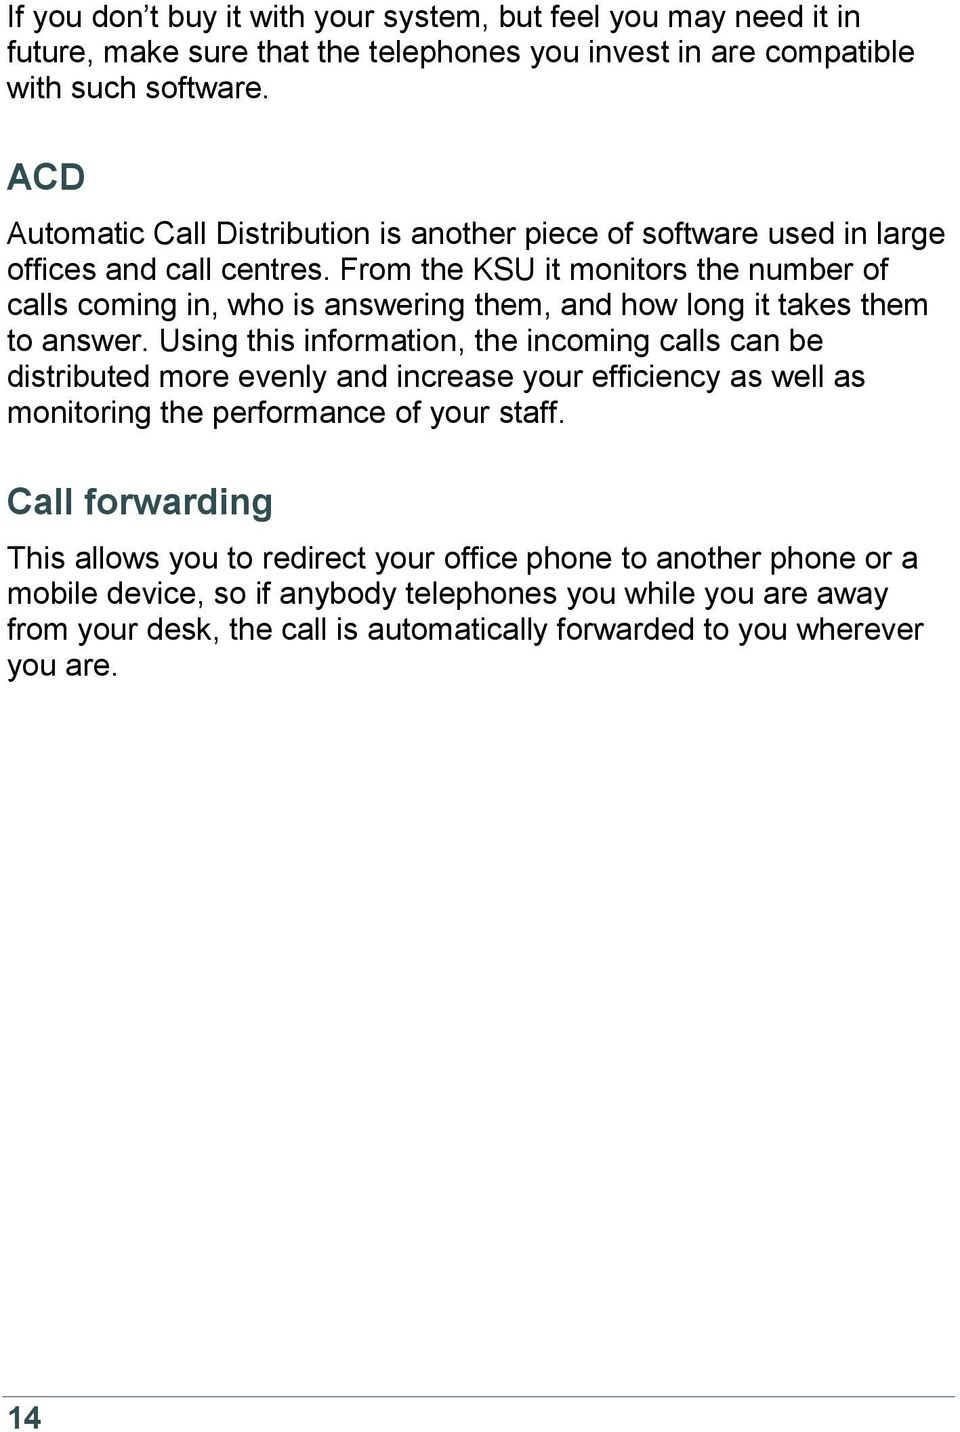 From the KSU it monitors the number of calls coming in, who is answering them, and how long it takes them to answer.